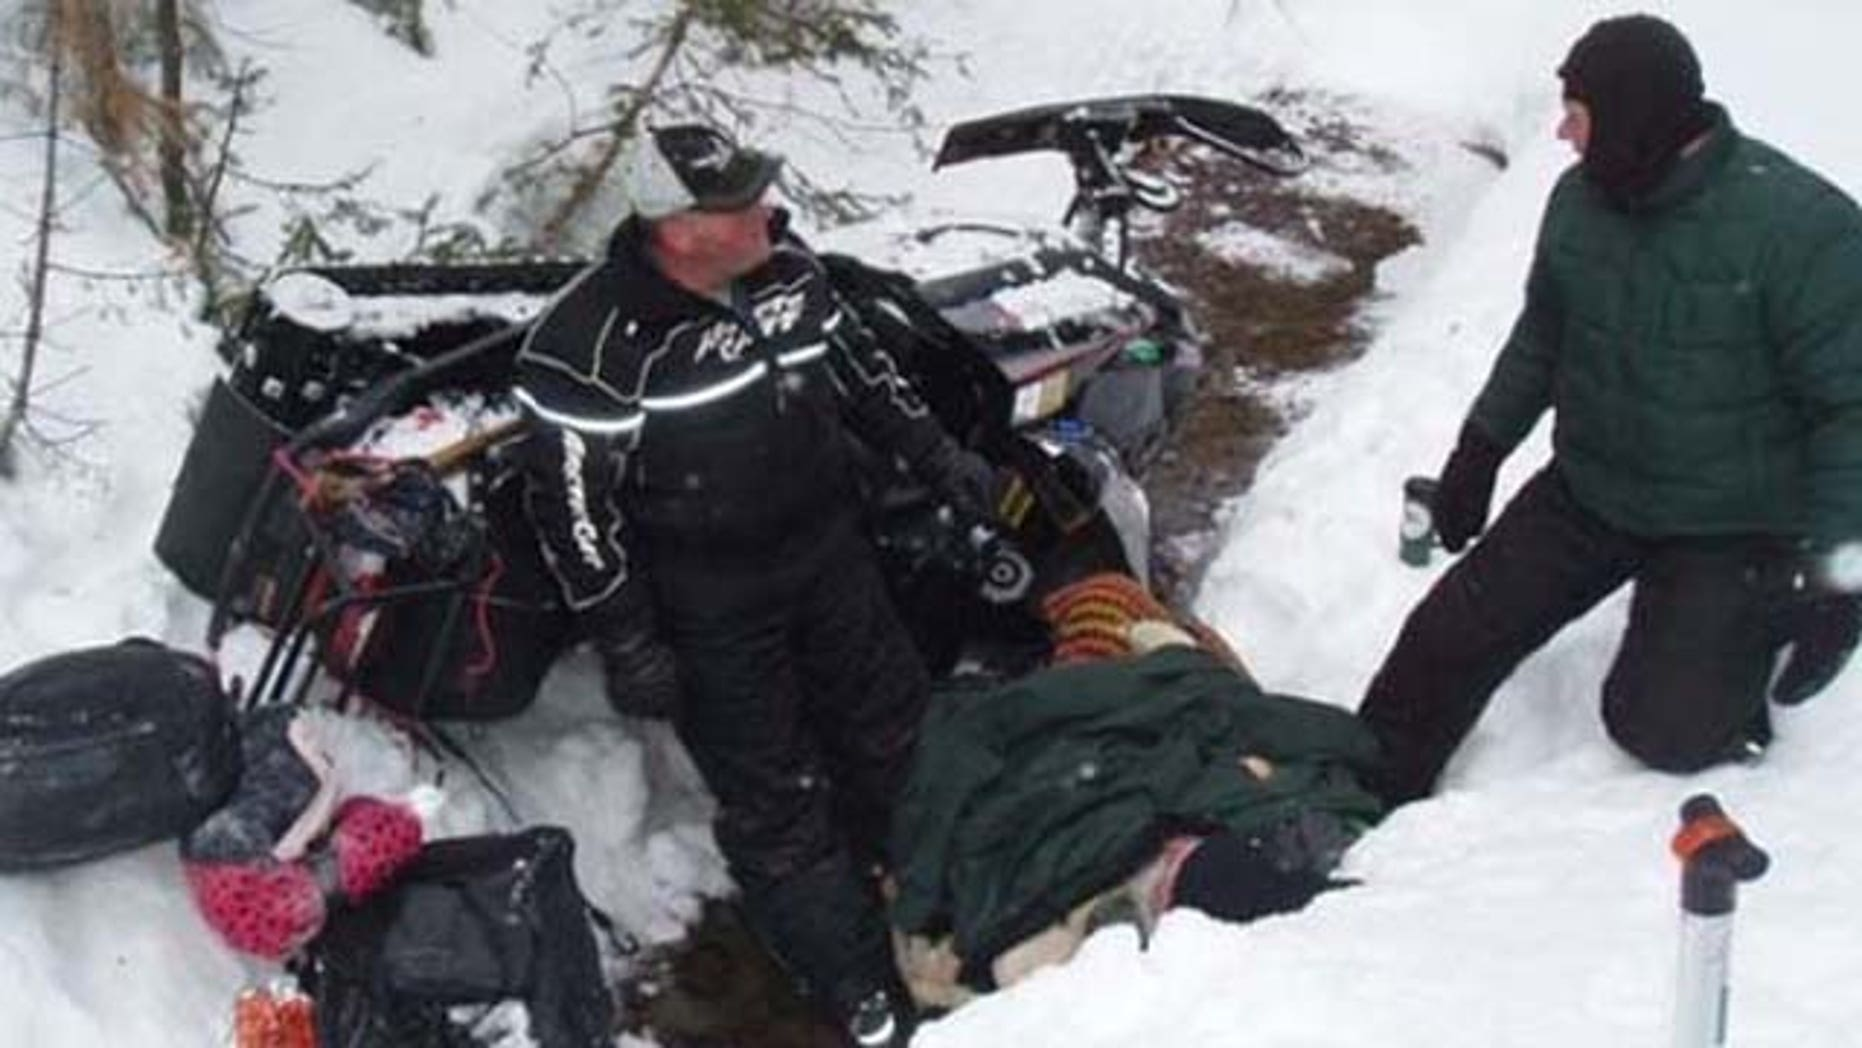 April 3, 2013: 64-year-old Paul Lessard was trapped under a snowmobile for almost a day.